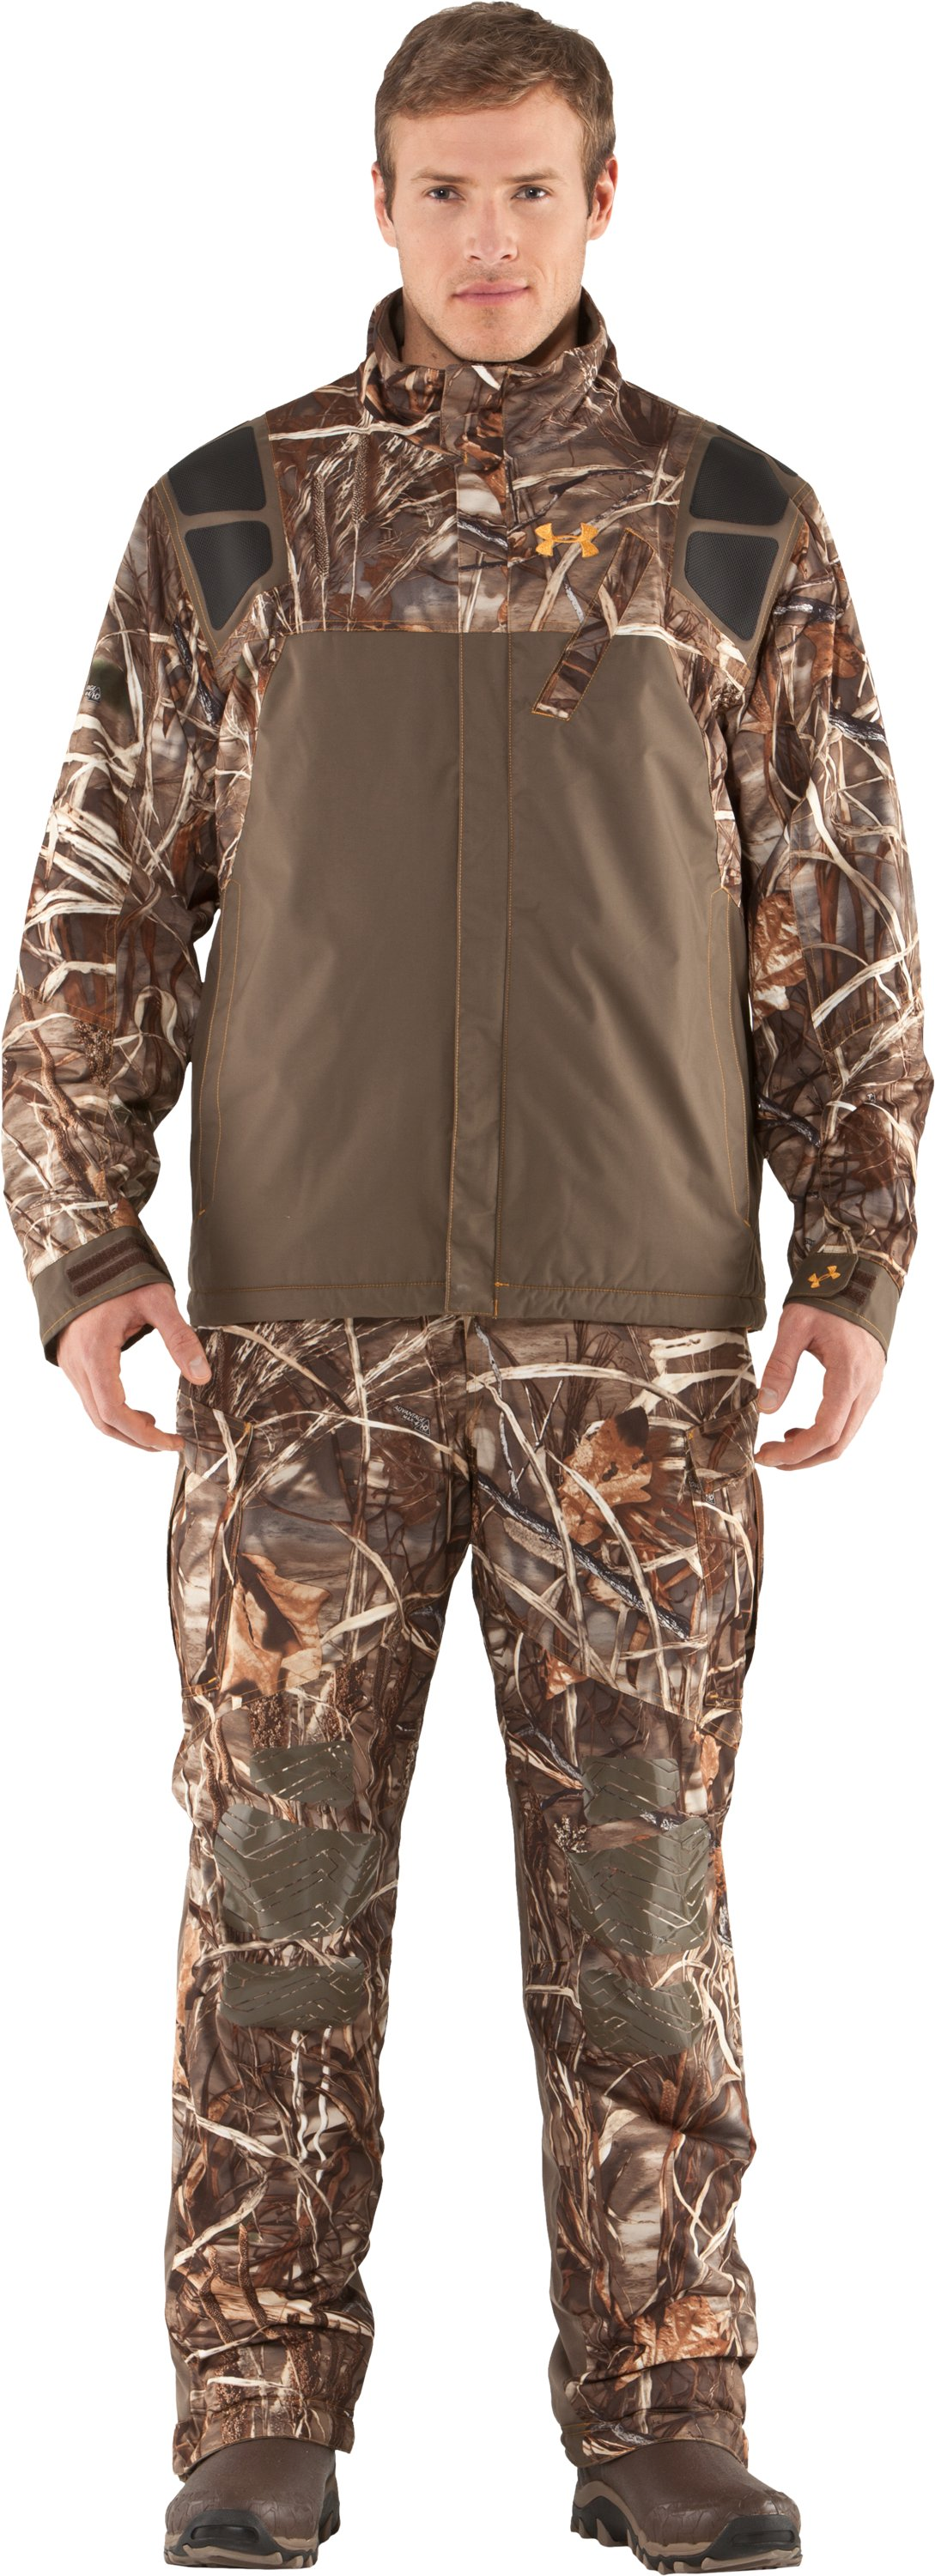 Men's Skysweeper Camo Hunting Jacket, Realtree Max, zoomed image